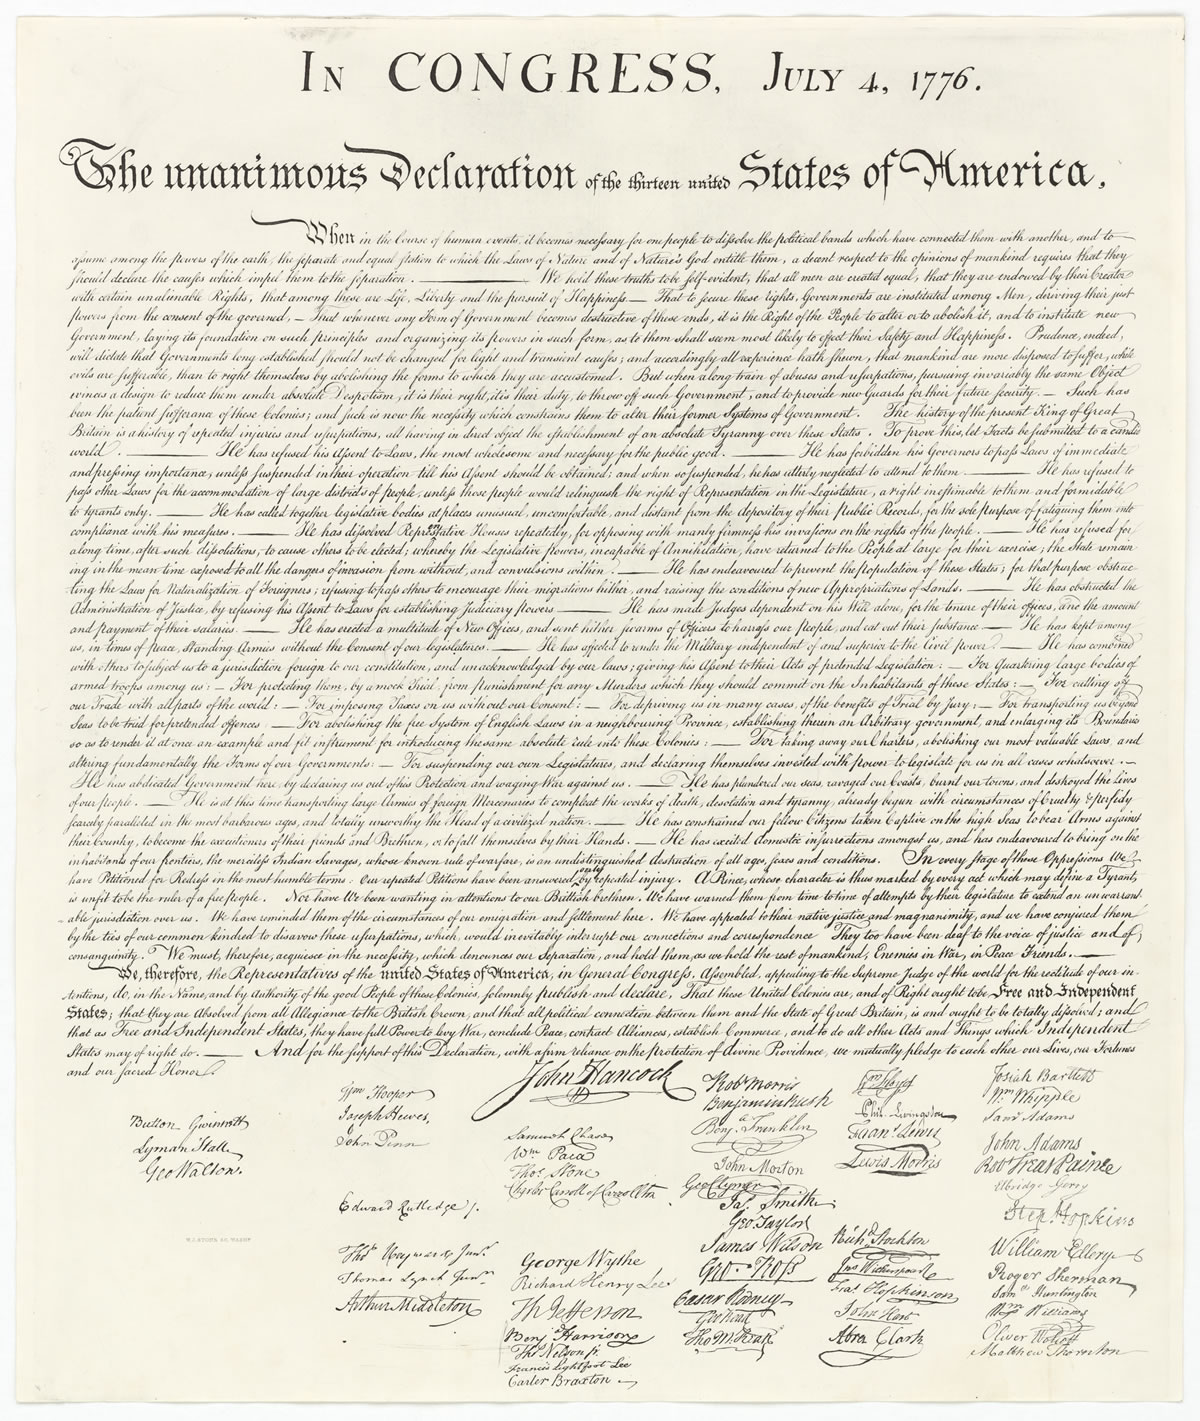 Remarkable Printable Copy Of The Declaration Of